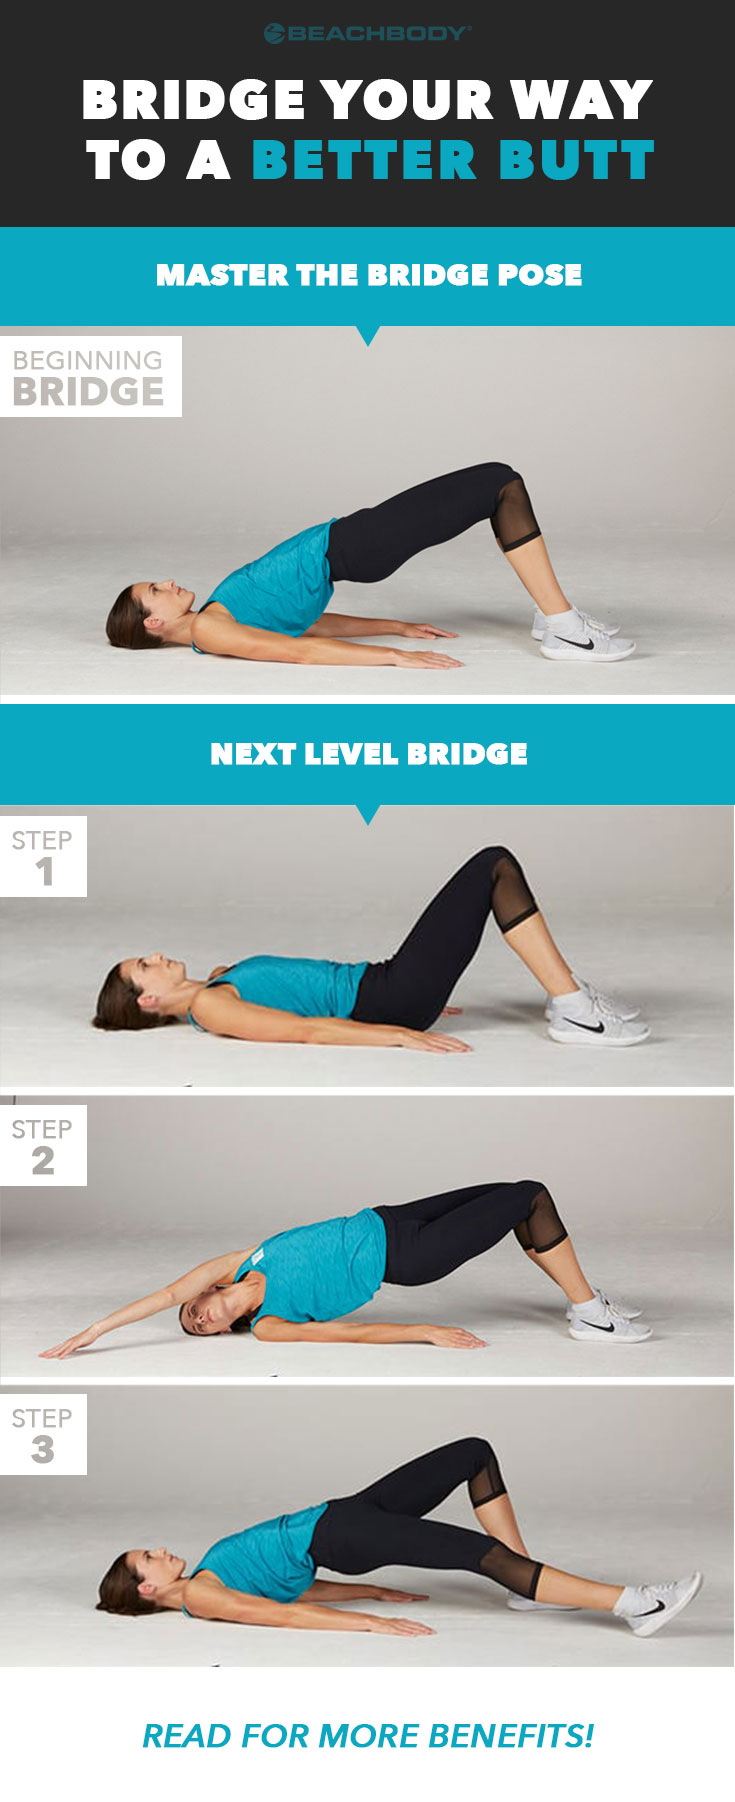 Never heard of a bridge exercise? Already a master? Read on to learn the basics, plus discover more challenging bridge exercise variations and their benefits.